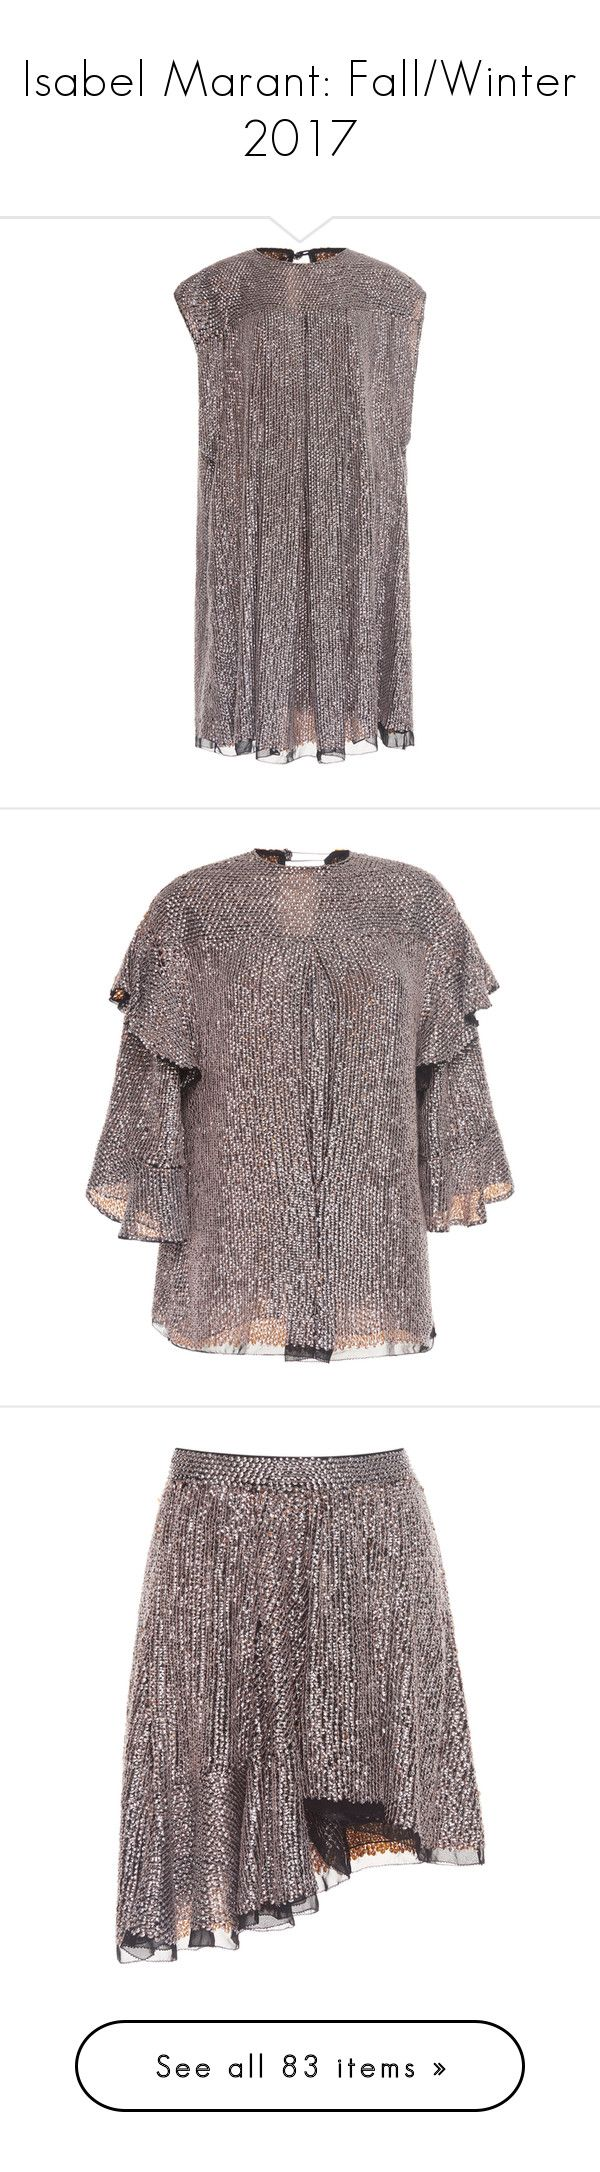 """""""Isabel Marant: Fall/Winter 2017"""" by livnd ❤ liked on Polyvore featuring isabelmarant, fallwinter2017, livndfashion, livndisabelmarant, dresses, silver, cocktail shift dress, silver dress, silver sequin cocktail dress and silver shift dress"""